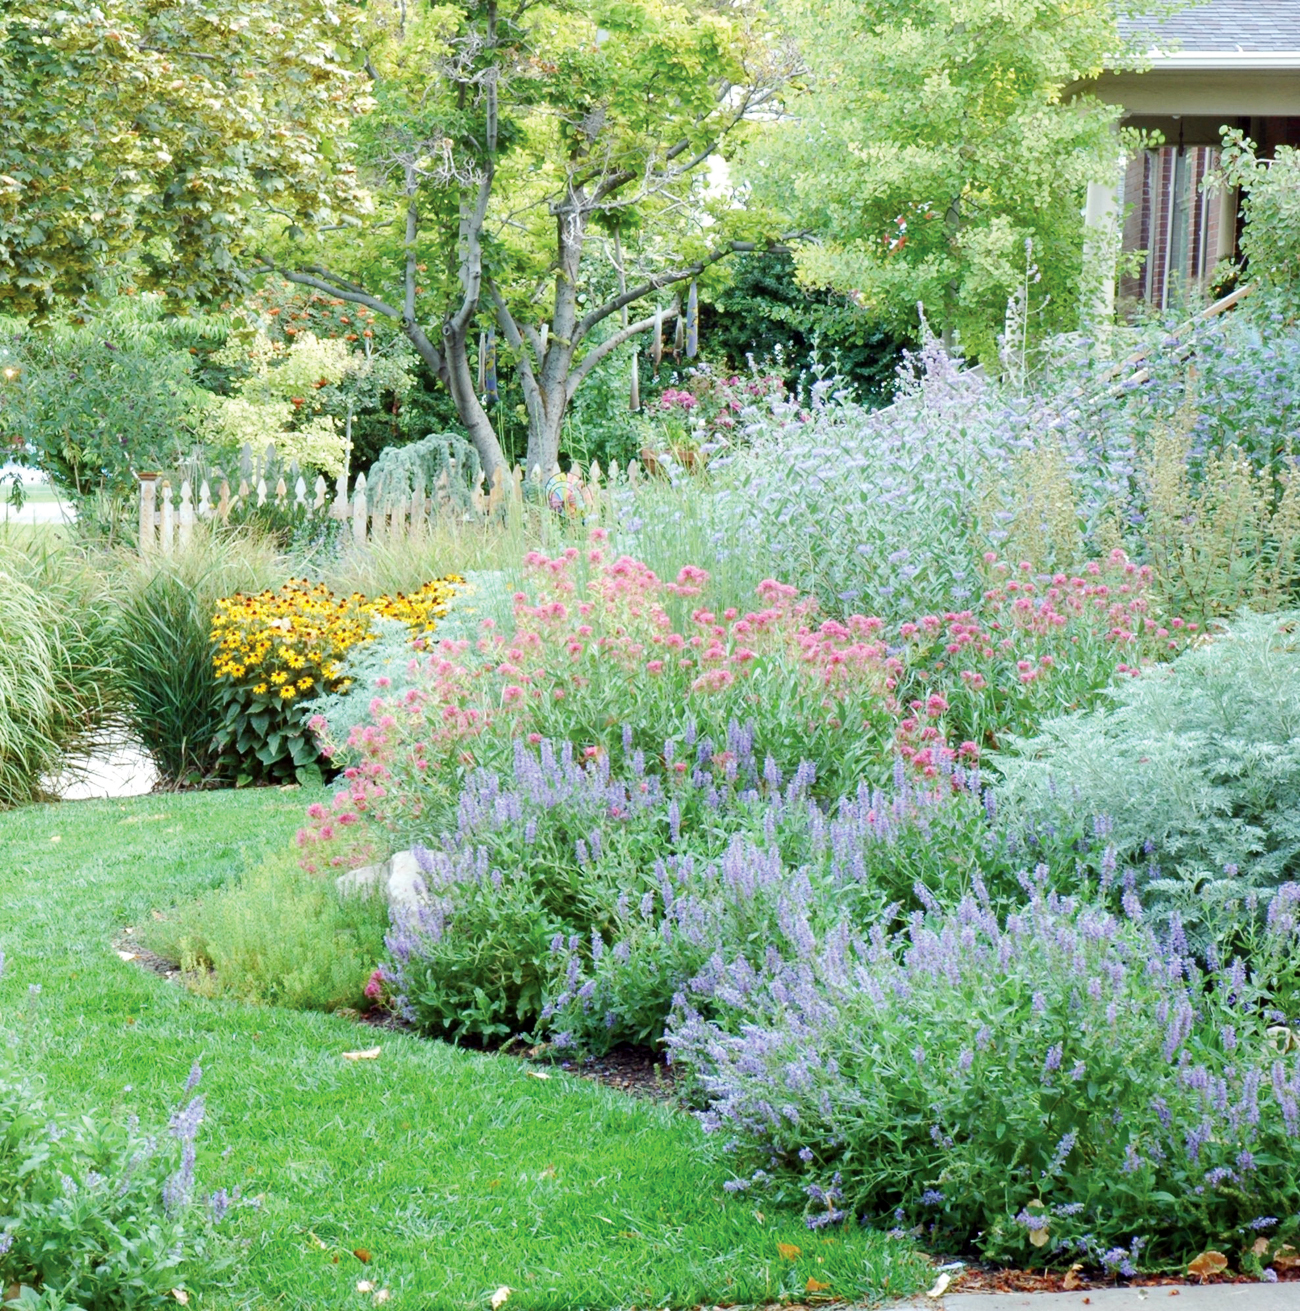 A lush lawn and a gorgeous hillside of vibrant varying colors of flowers.